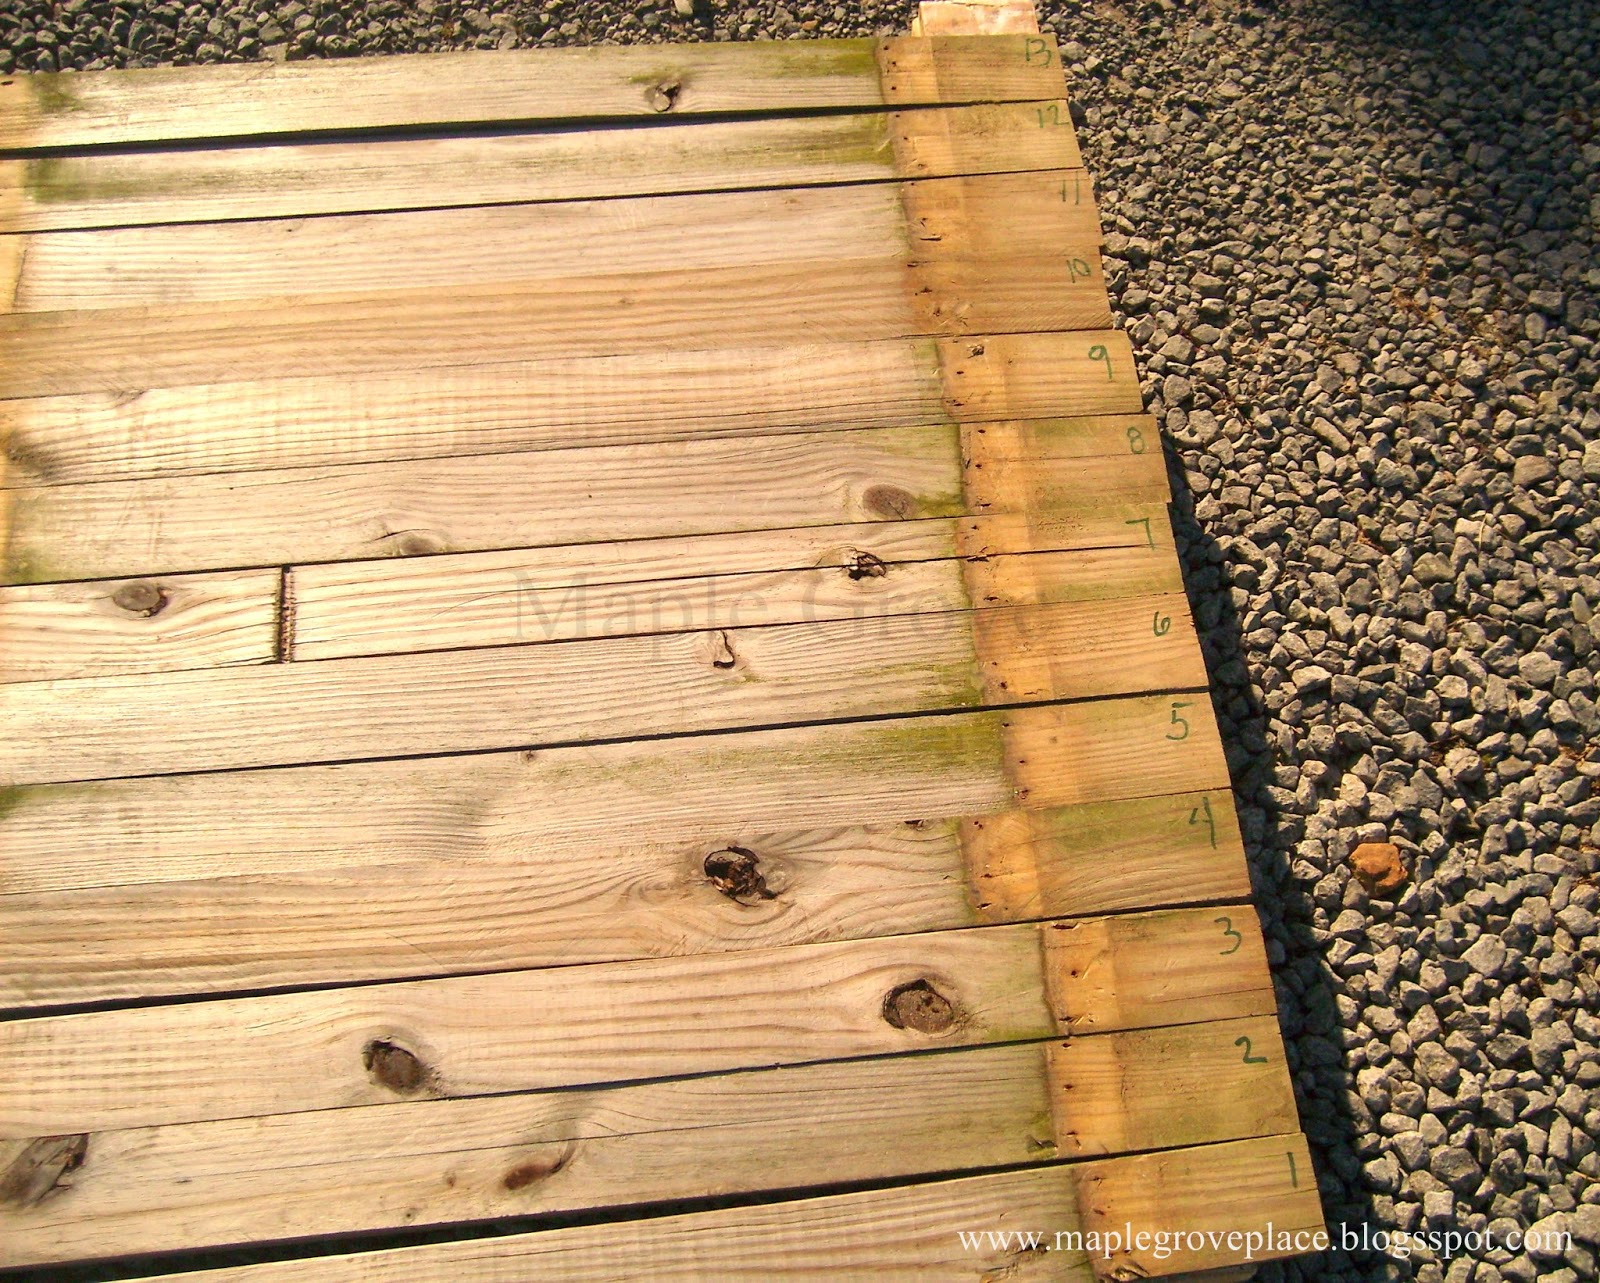 Maple Grove: How to make a picket fence American wall flag